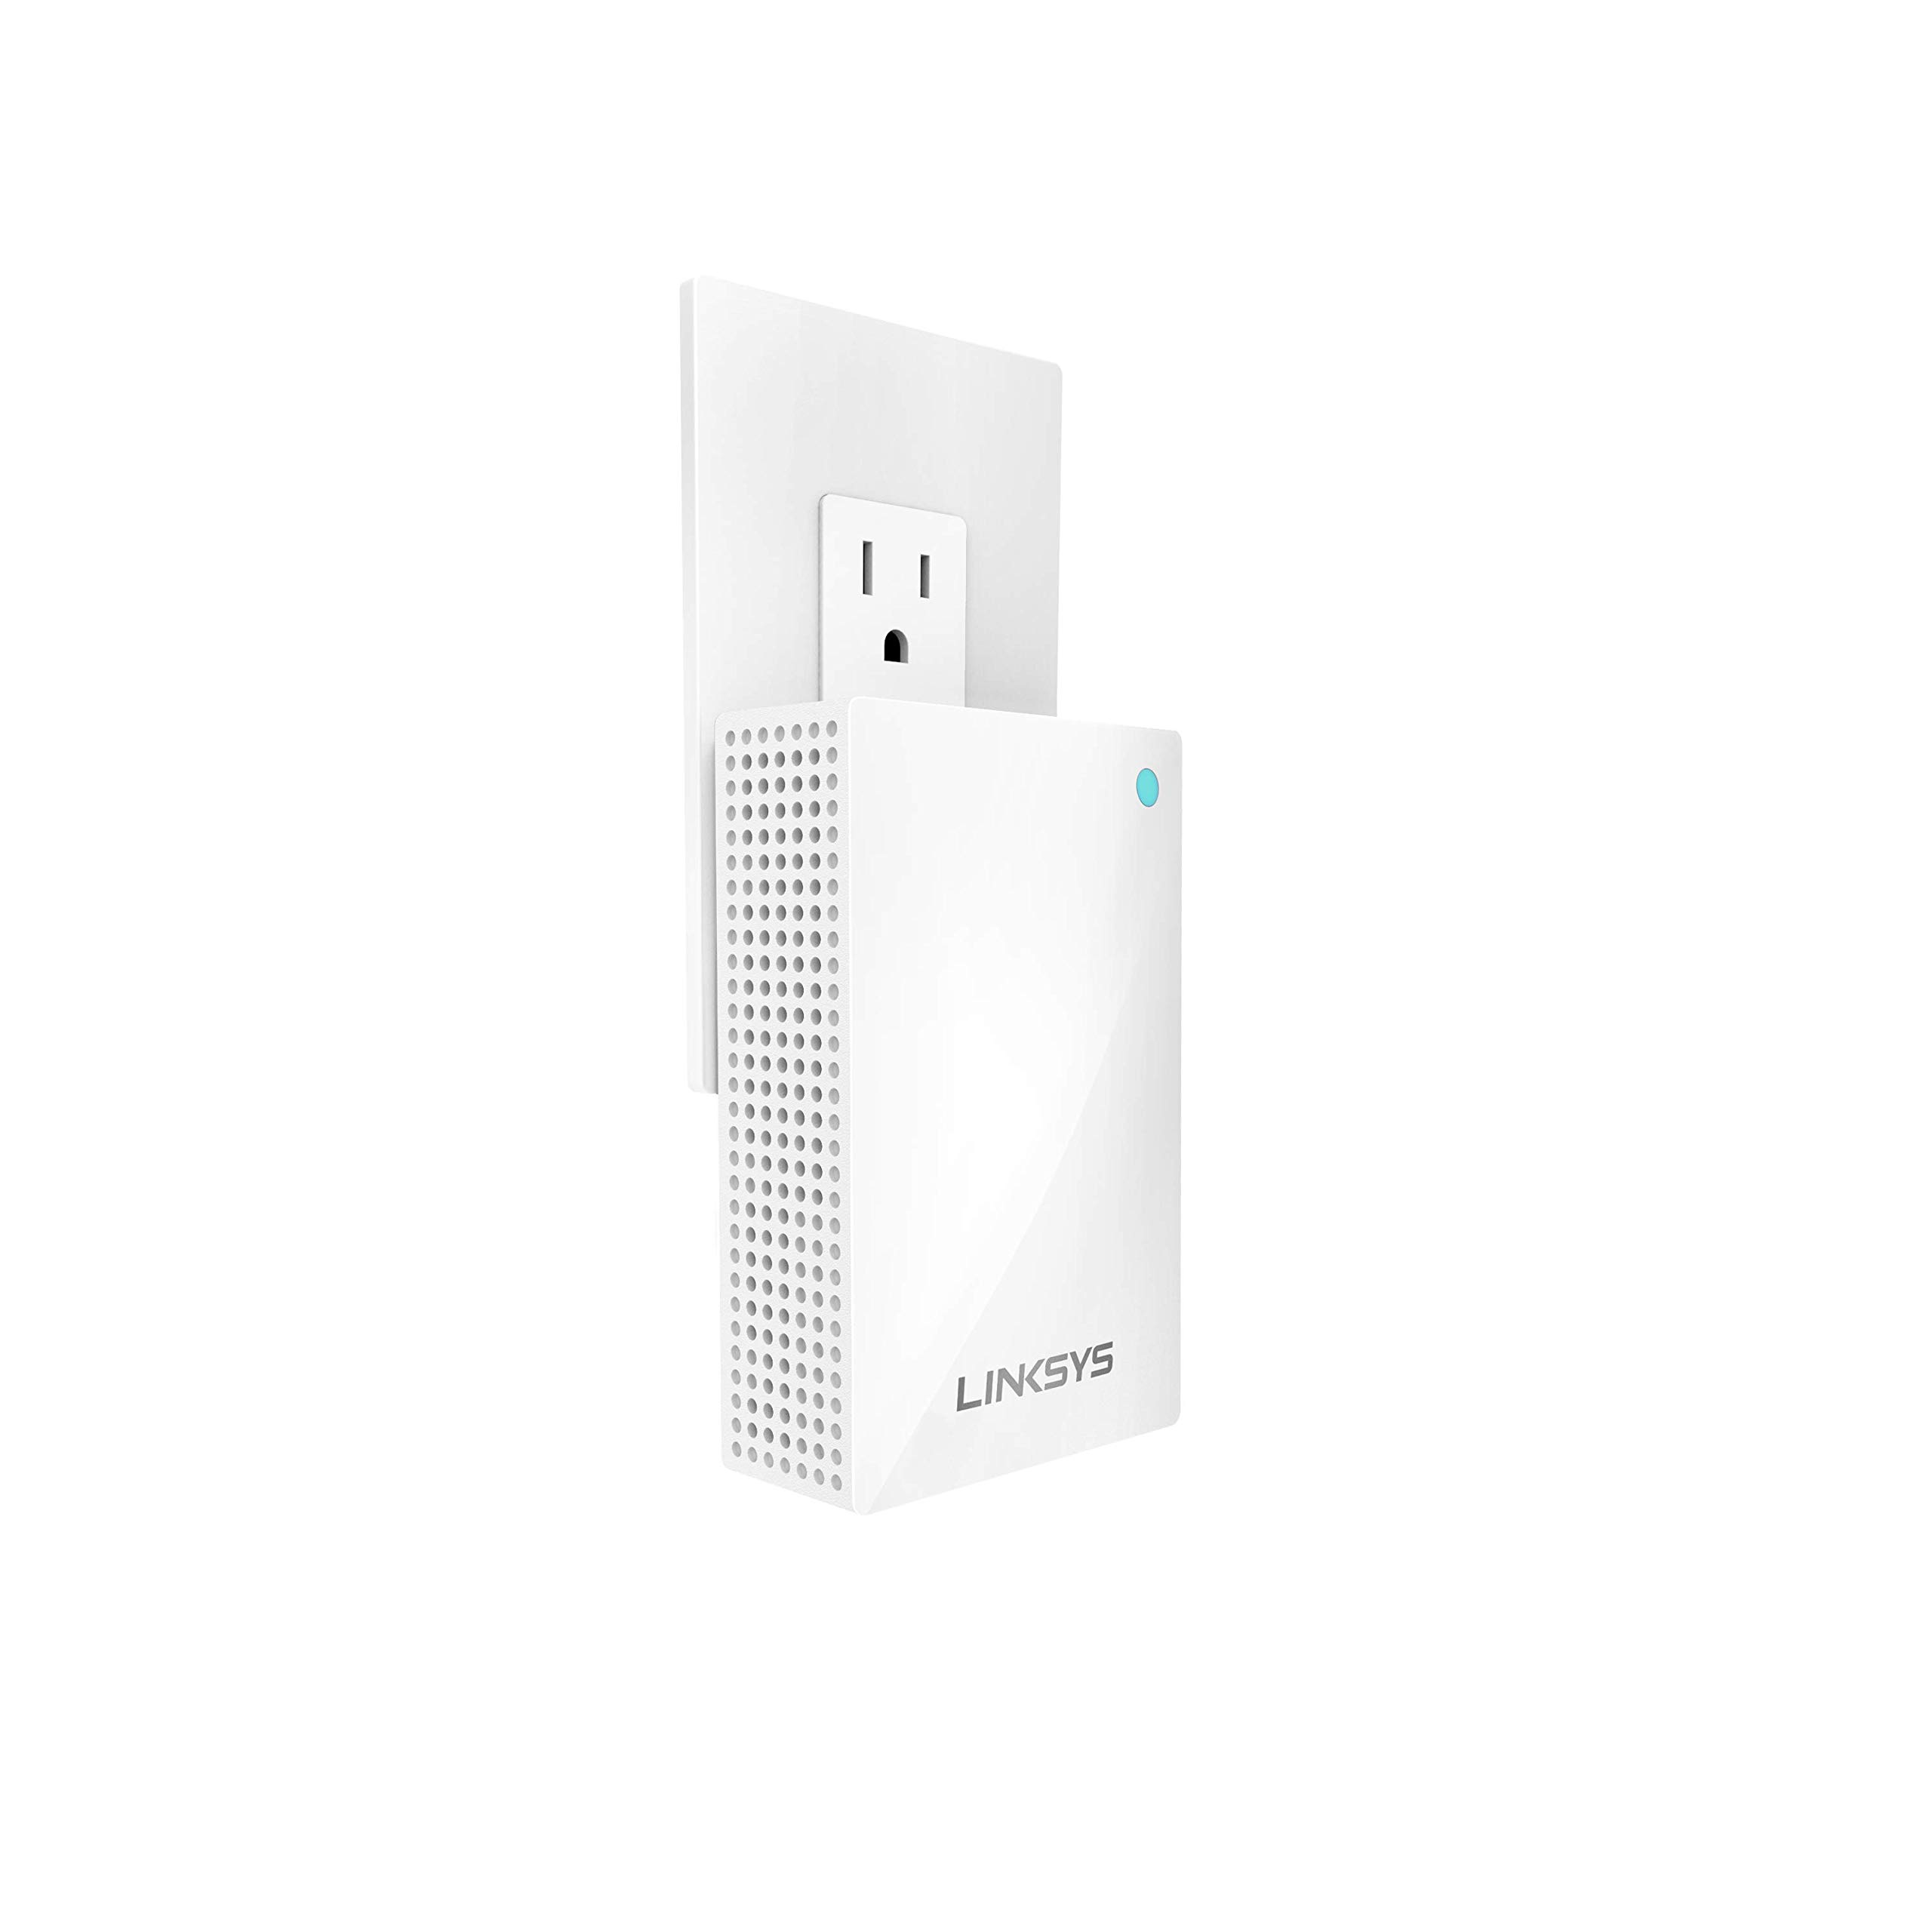 Linksys Velop Whole Home WiFi Intelligent Mesh System Wall Plug-in, Works with Your Velop System to Extend Range & Speed by Linksys